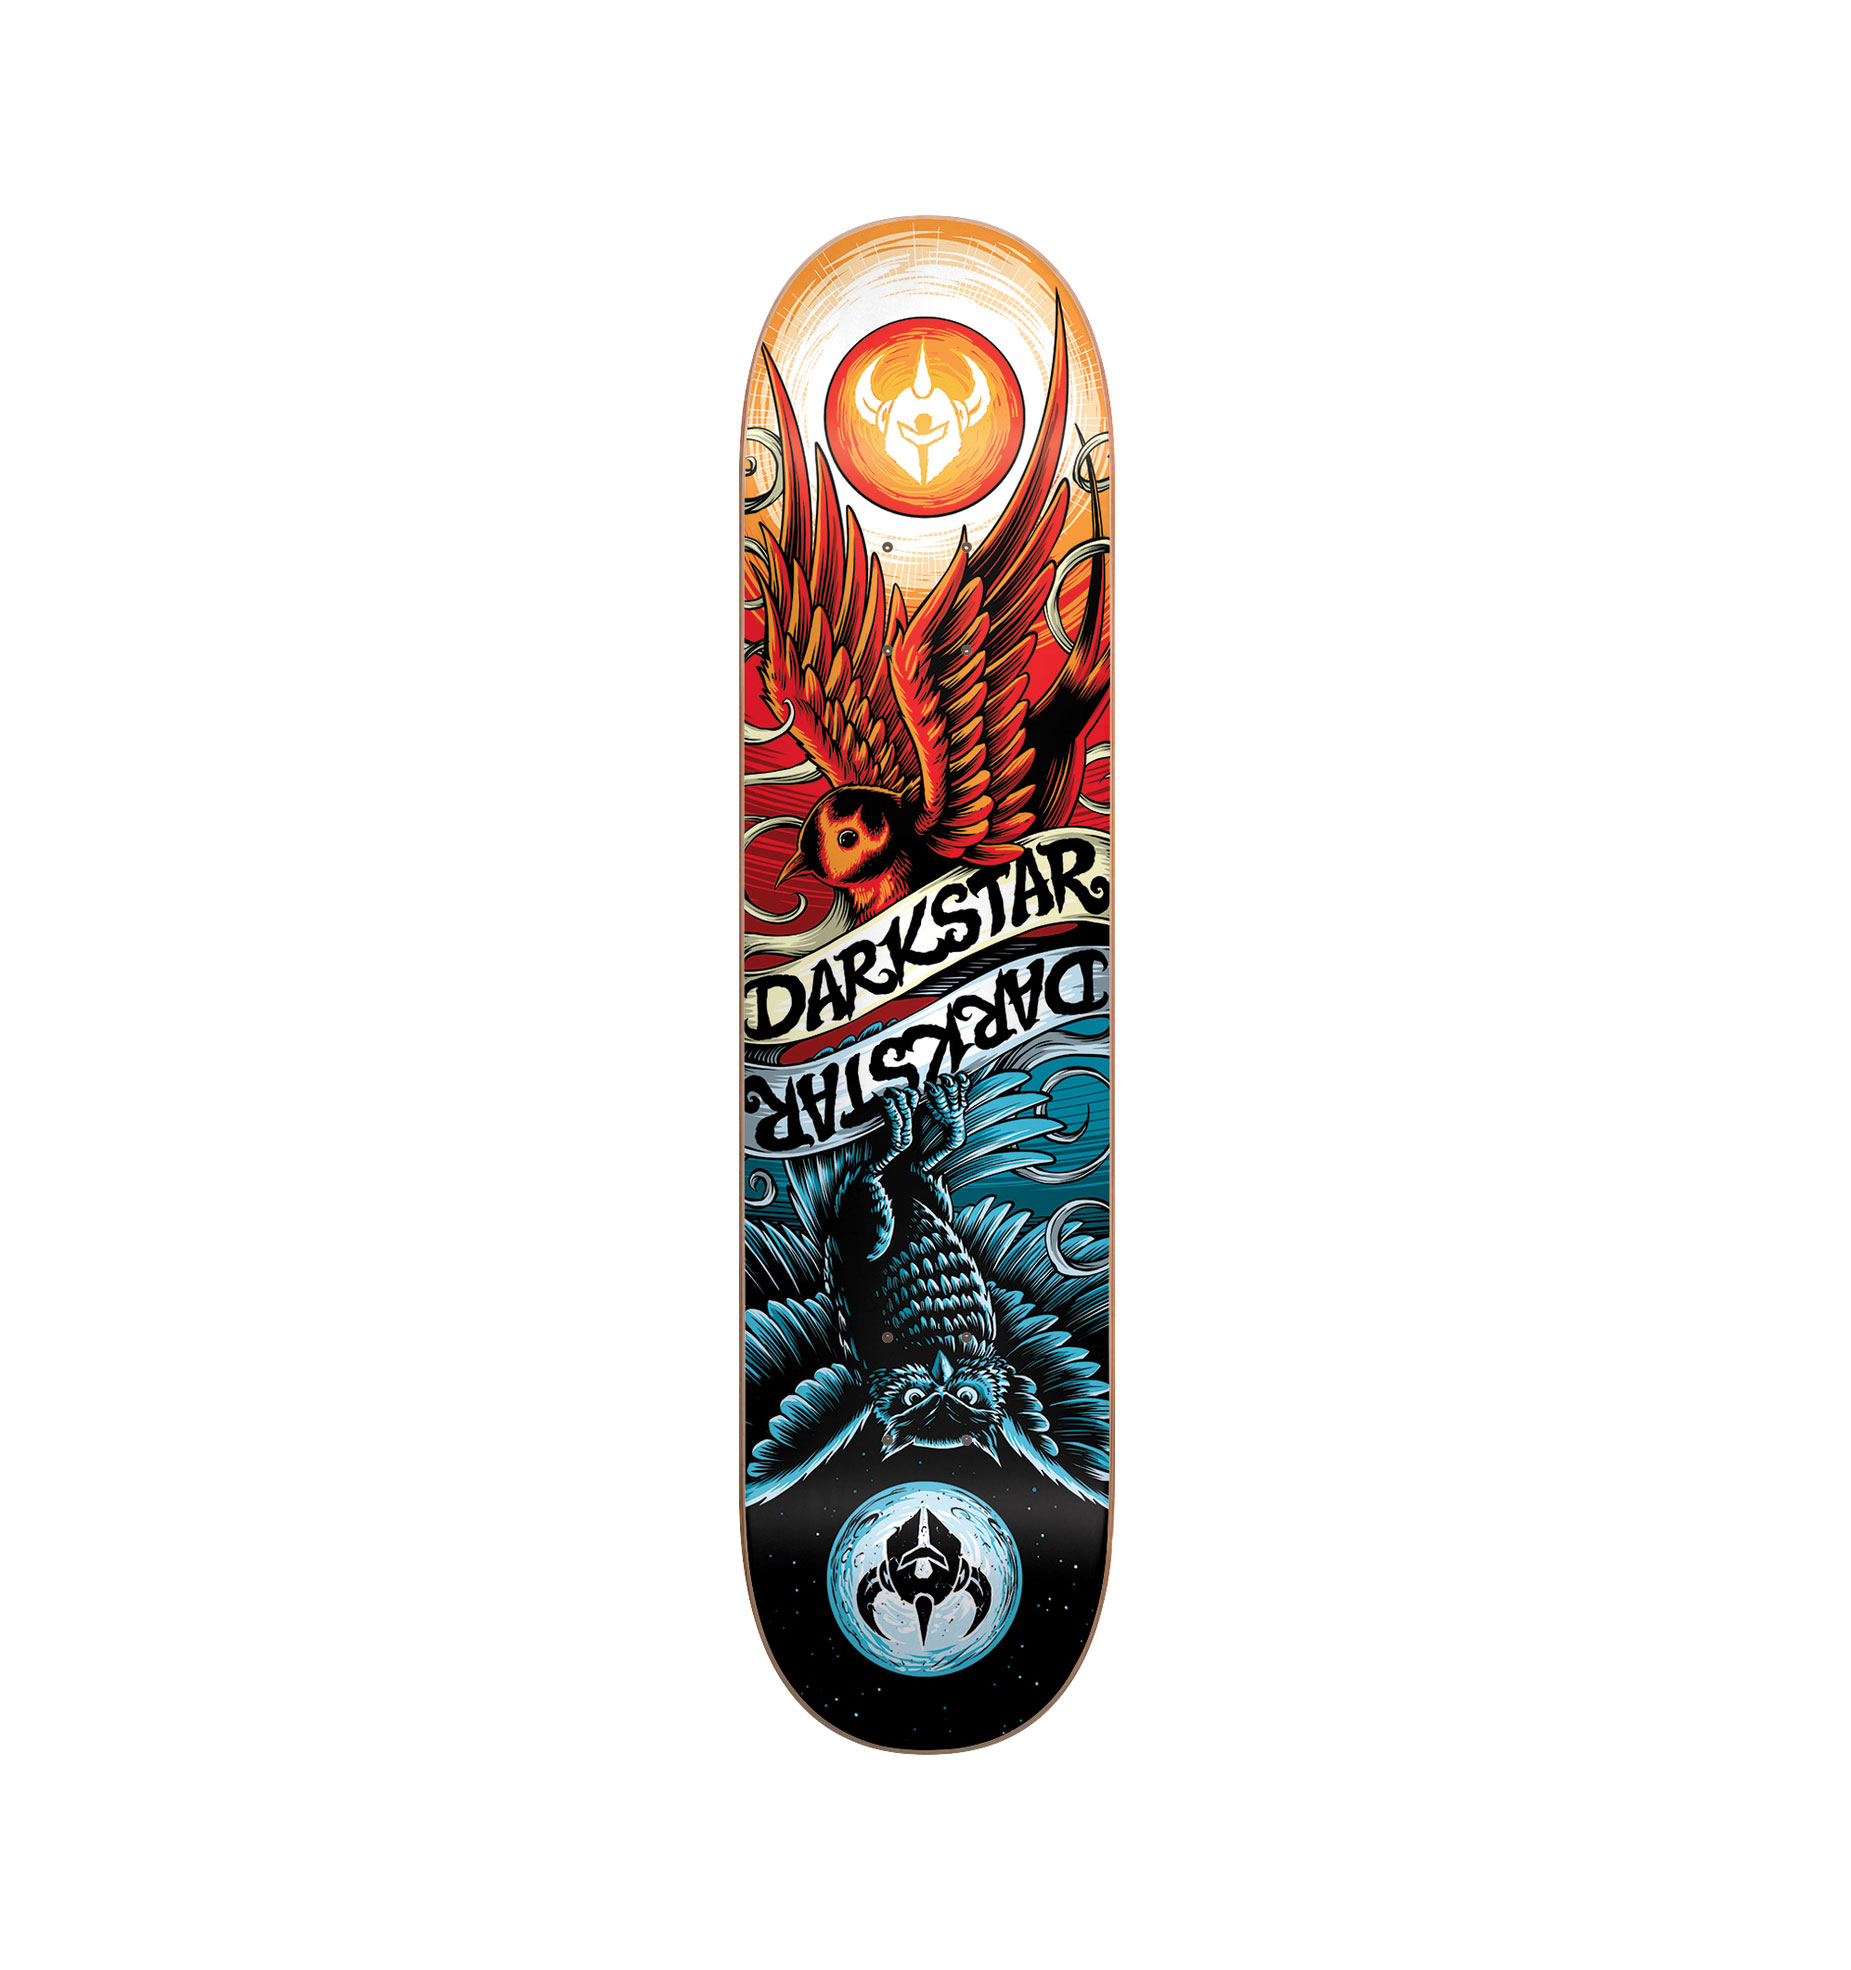 Darkstar Early Bird deck